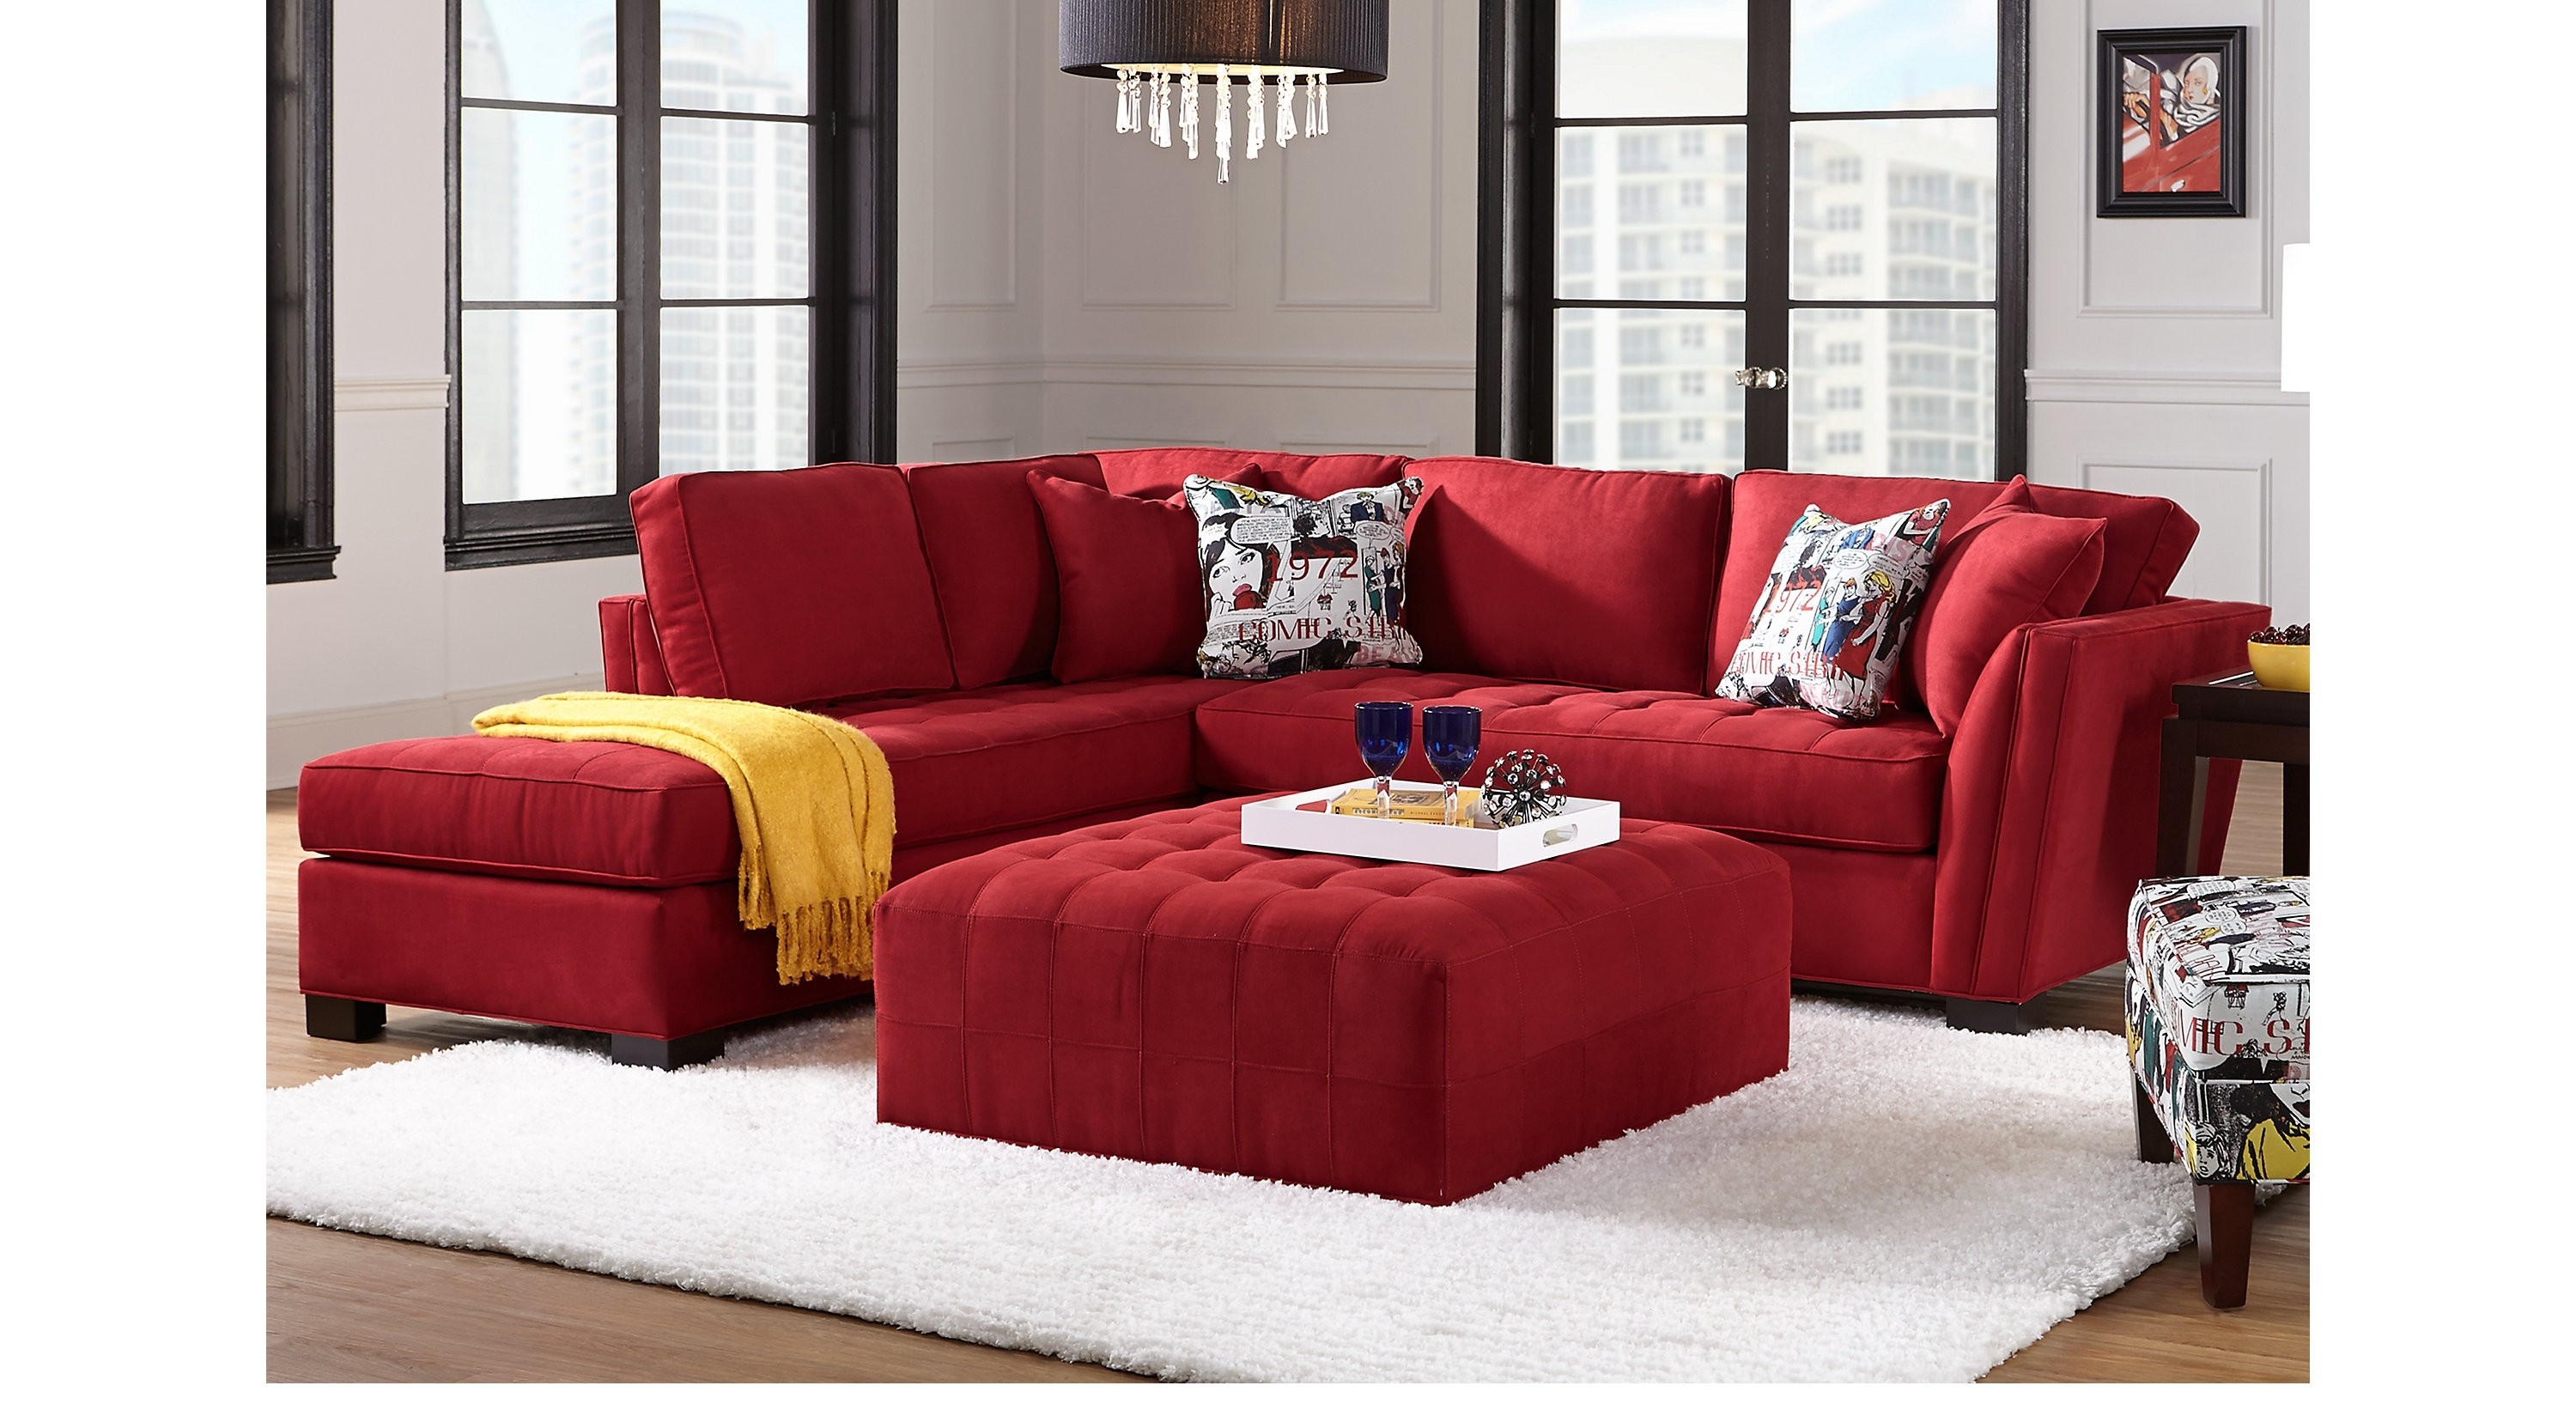 Cindy Crawford Home Sectionals Throughout Well Liked Red Sectional Sofas (View 18 of 20)